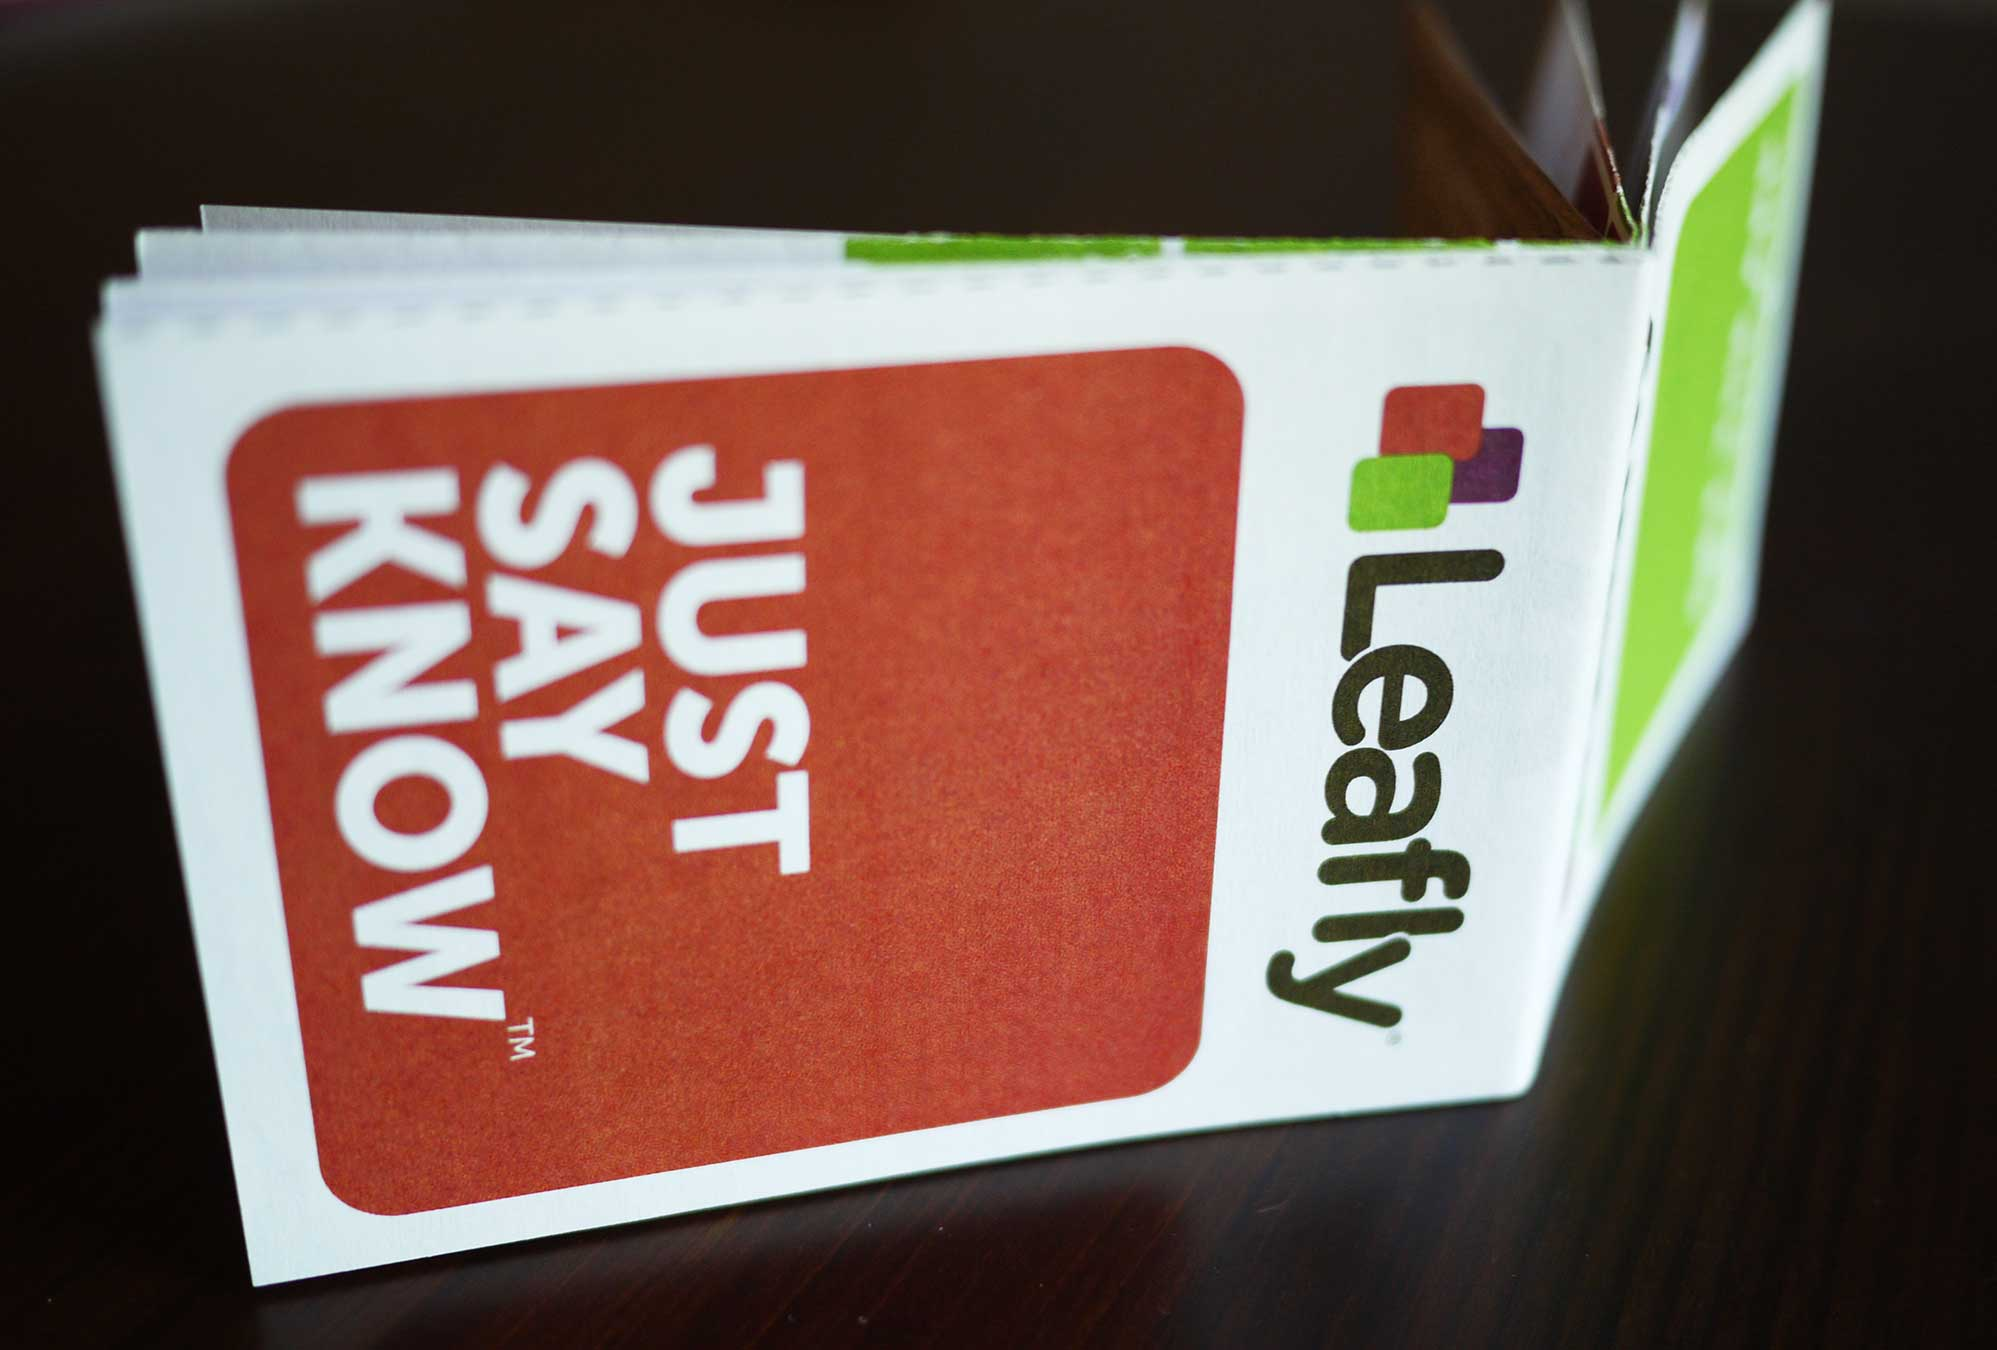 image of Leafly Just Say Know print design